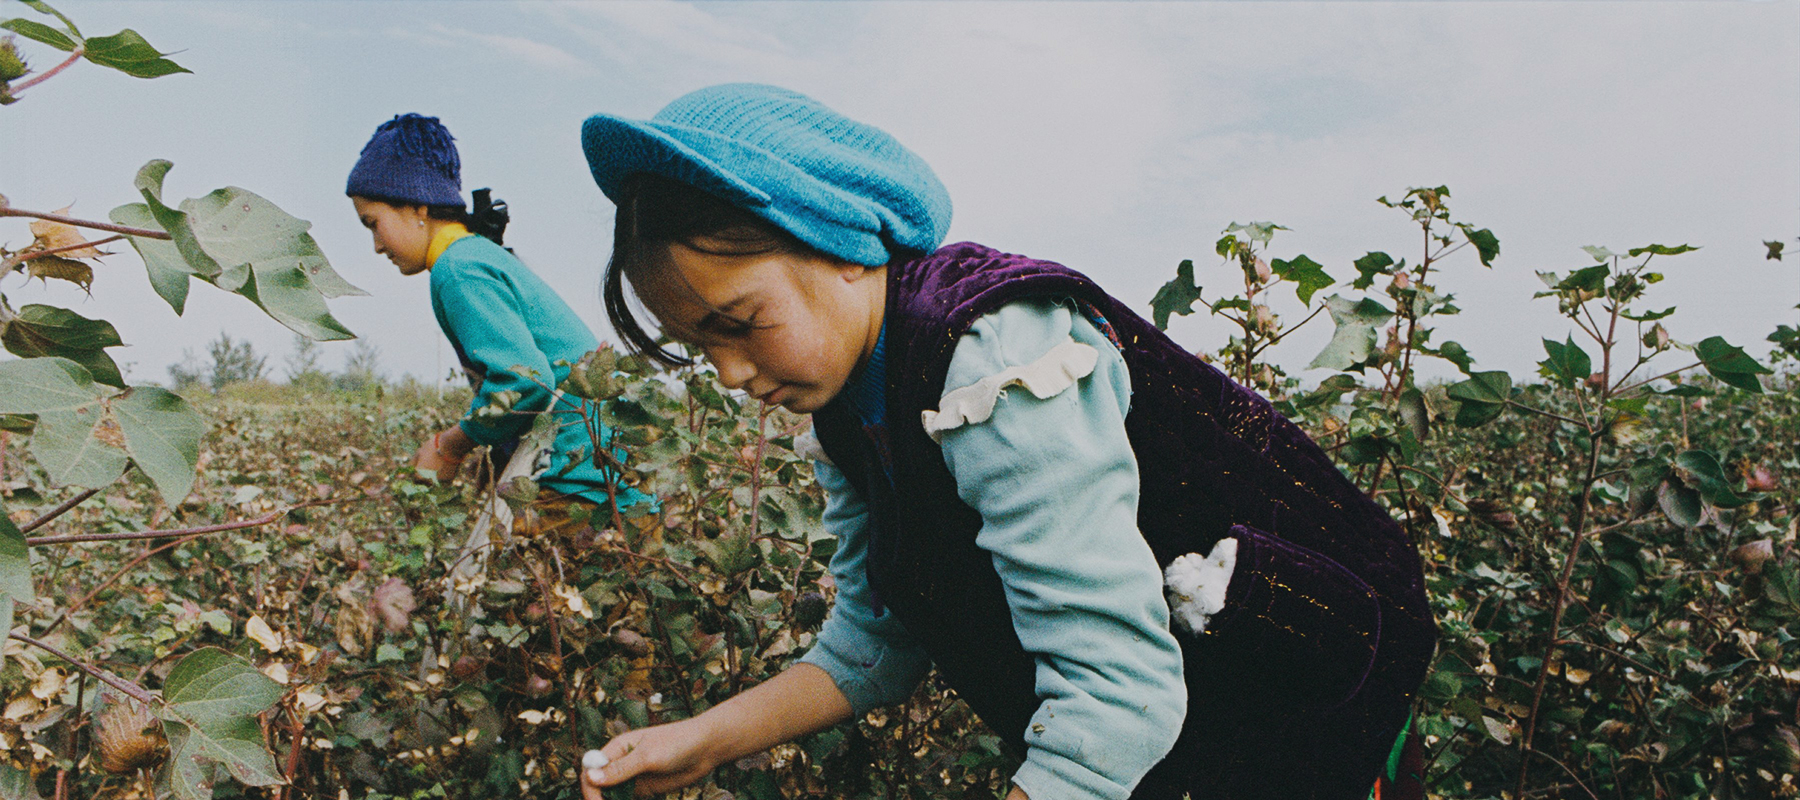 The true costs of cotton